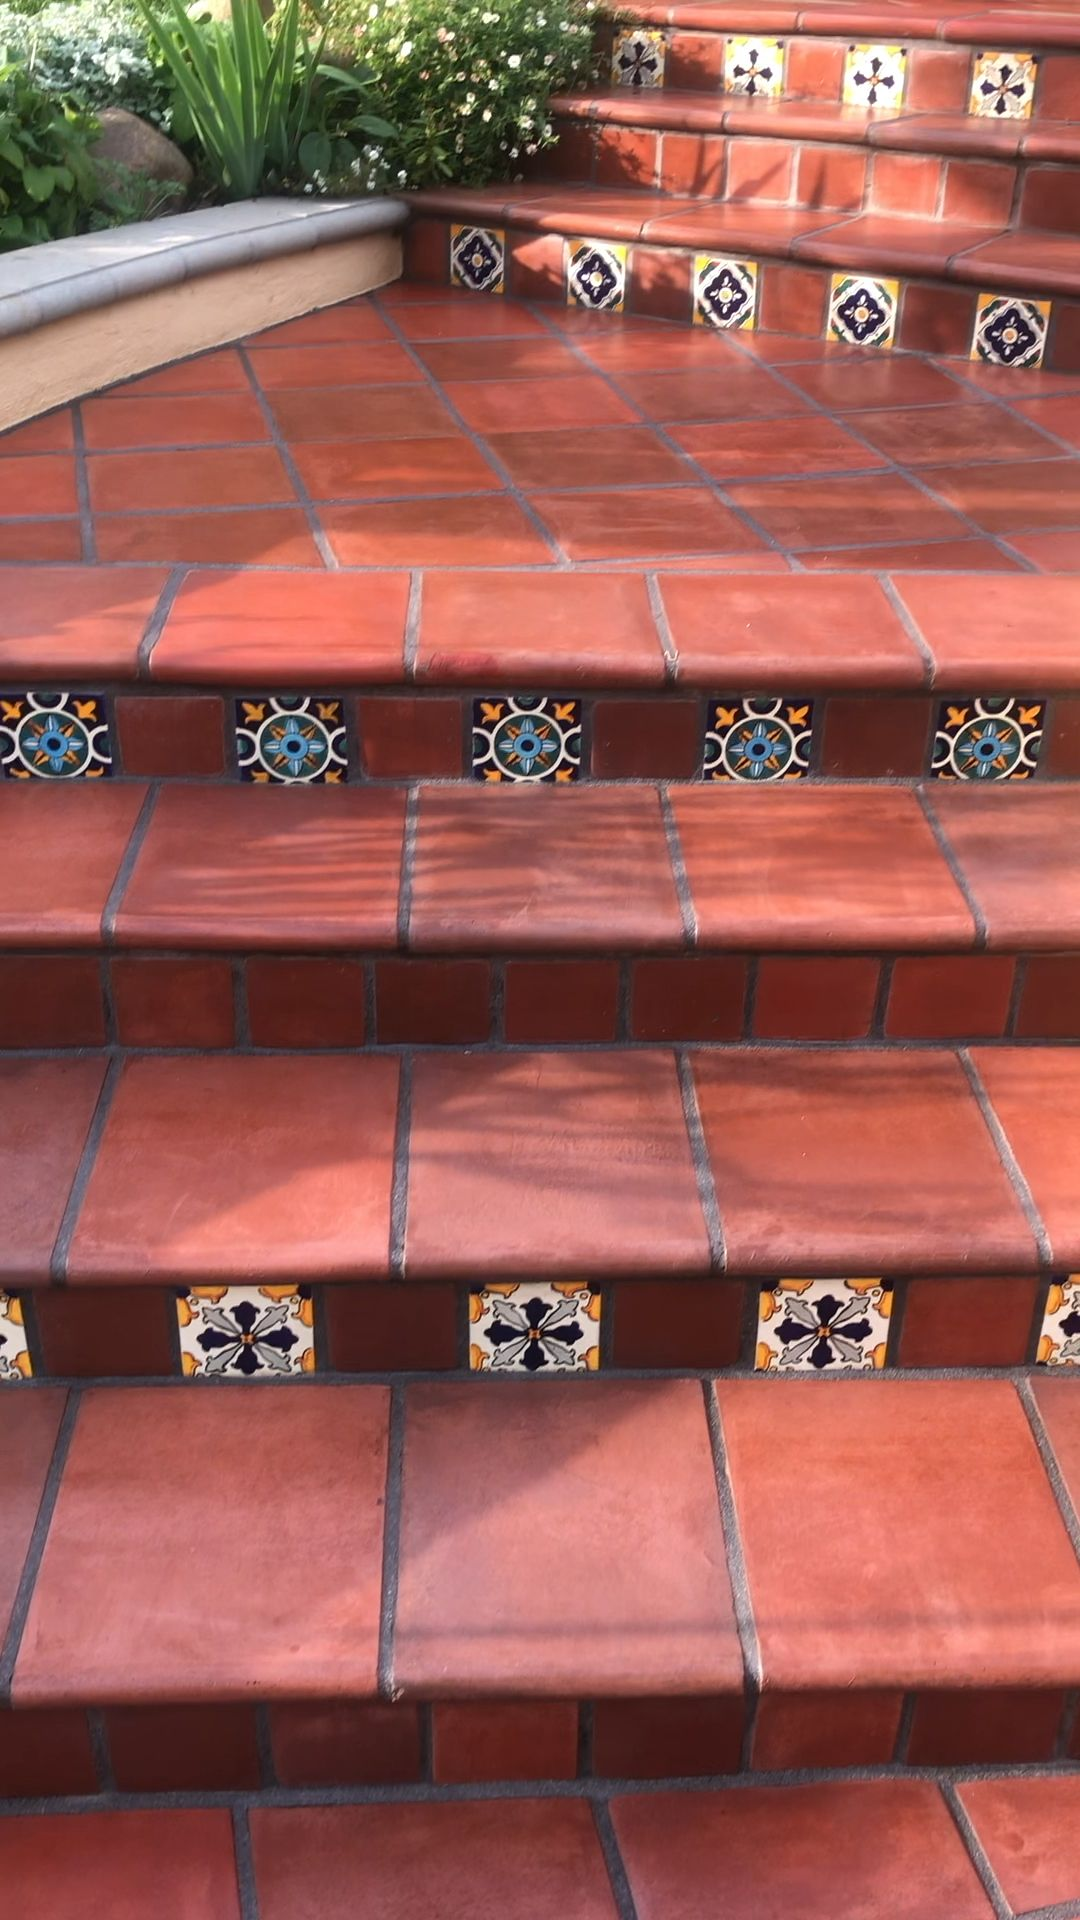 This amazing terracotta tile staircase was I  Santa Monica and was sealed with the shiny topical coating that was failing turning white and peeling  We fully stripped and removed all that old sealer and resealed with a color enhancing penetrating sealer, what do you think of this color  is part of Saltillo tile -